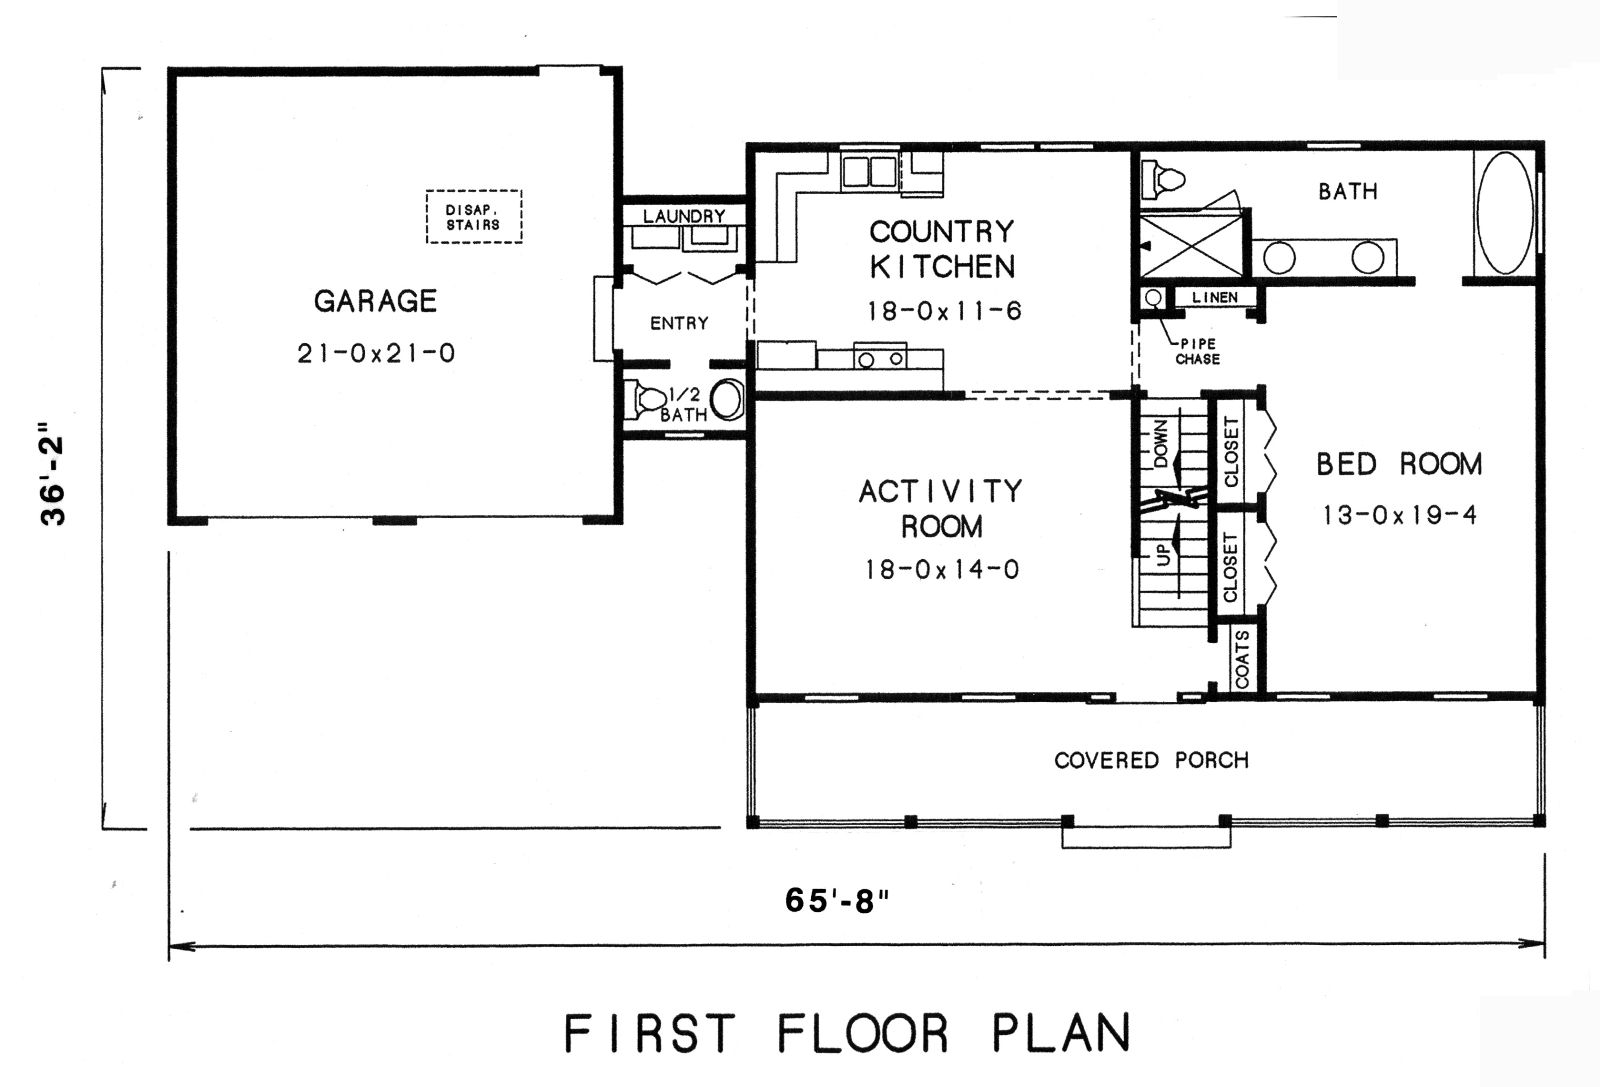 Cape cod house plans with master bedroom on first floor for 1st floor house plan india